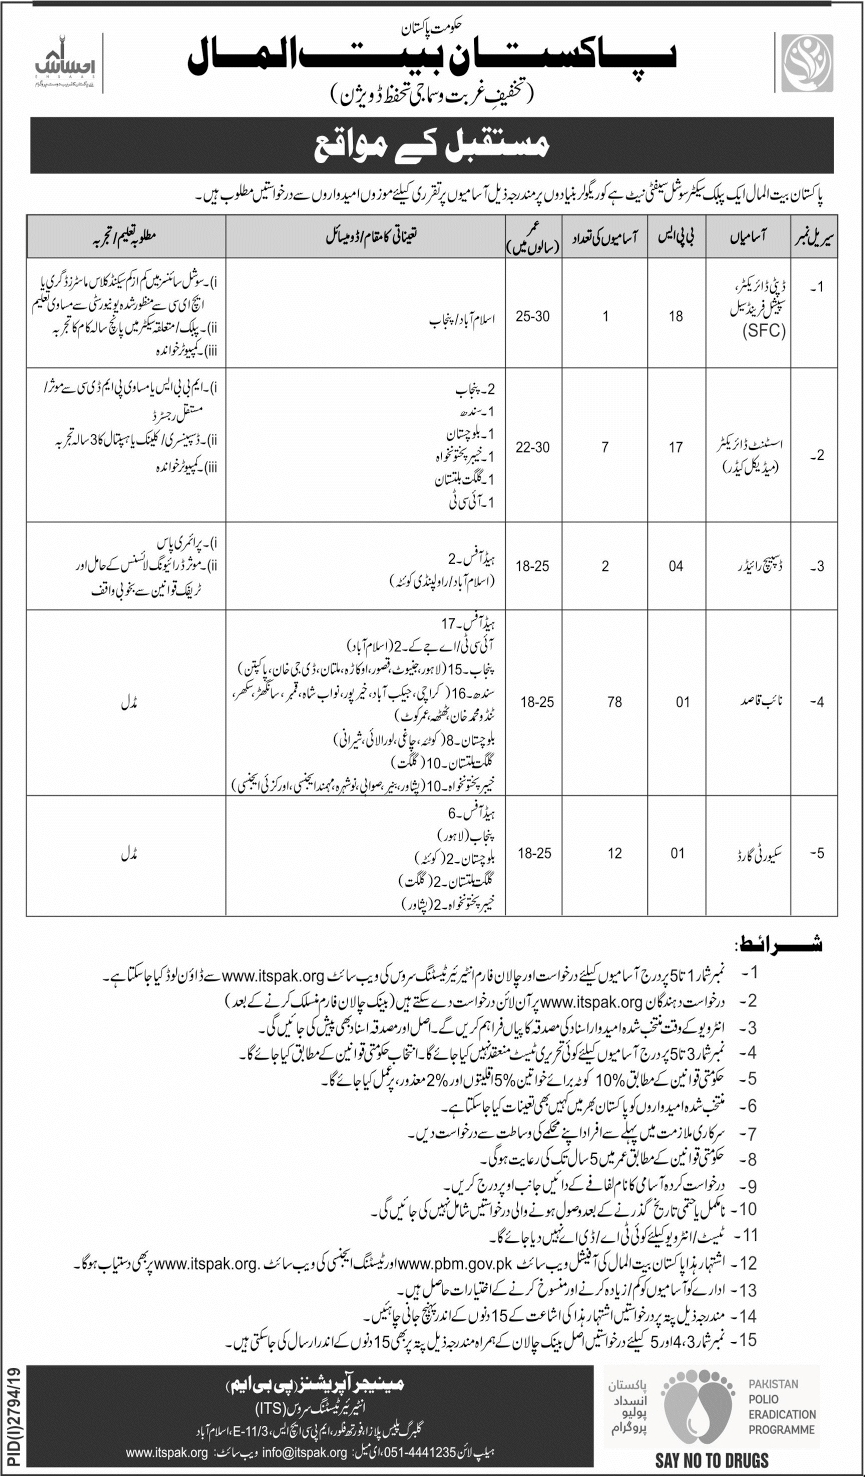 PBM Pakistan BaitulMal Jobs ITSPAK Test Roll Number Slips